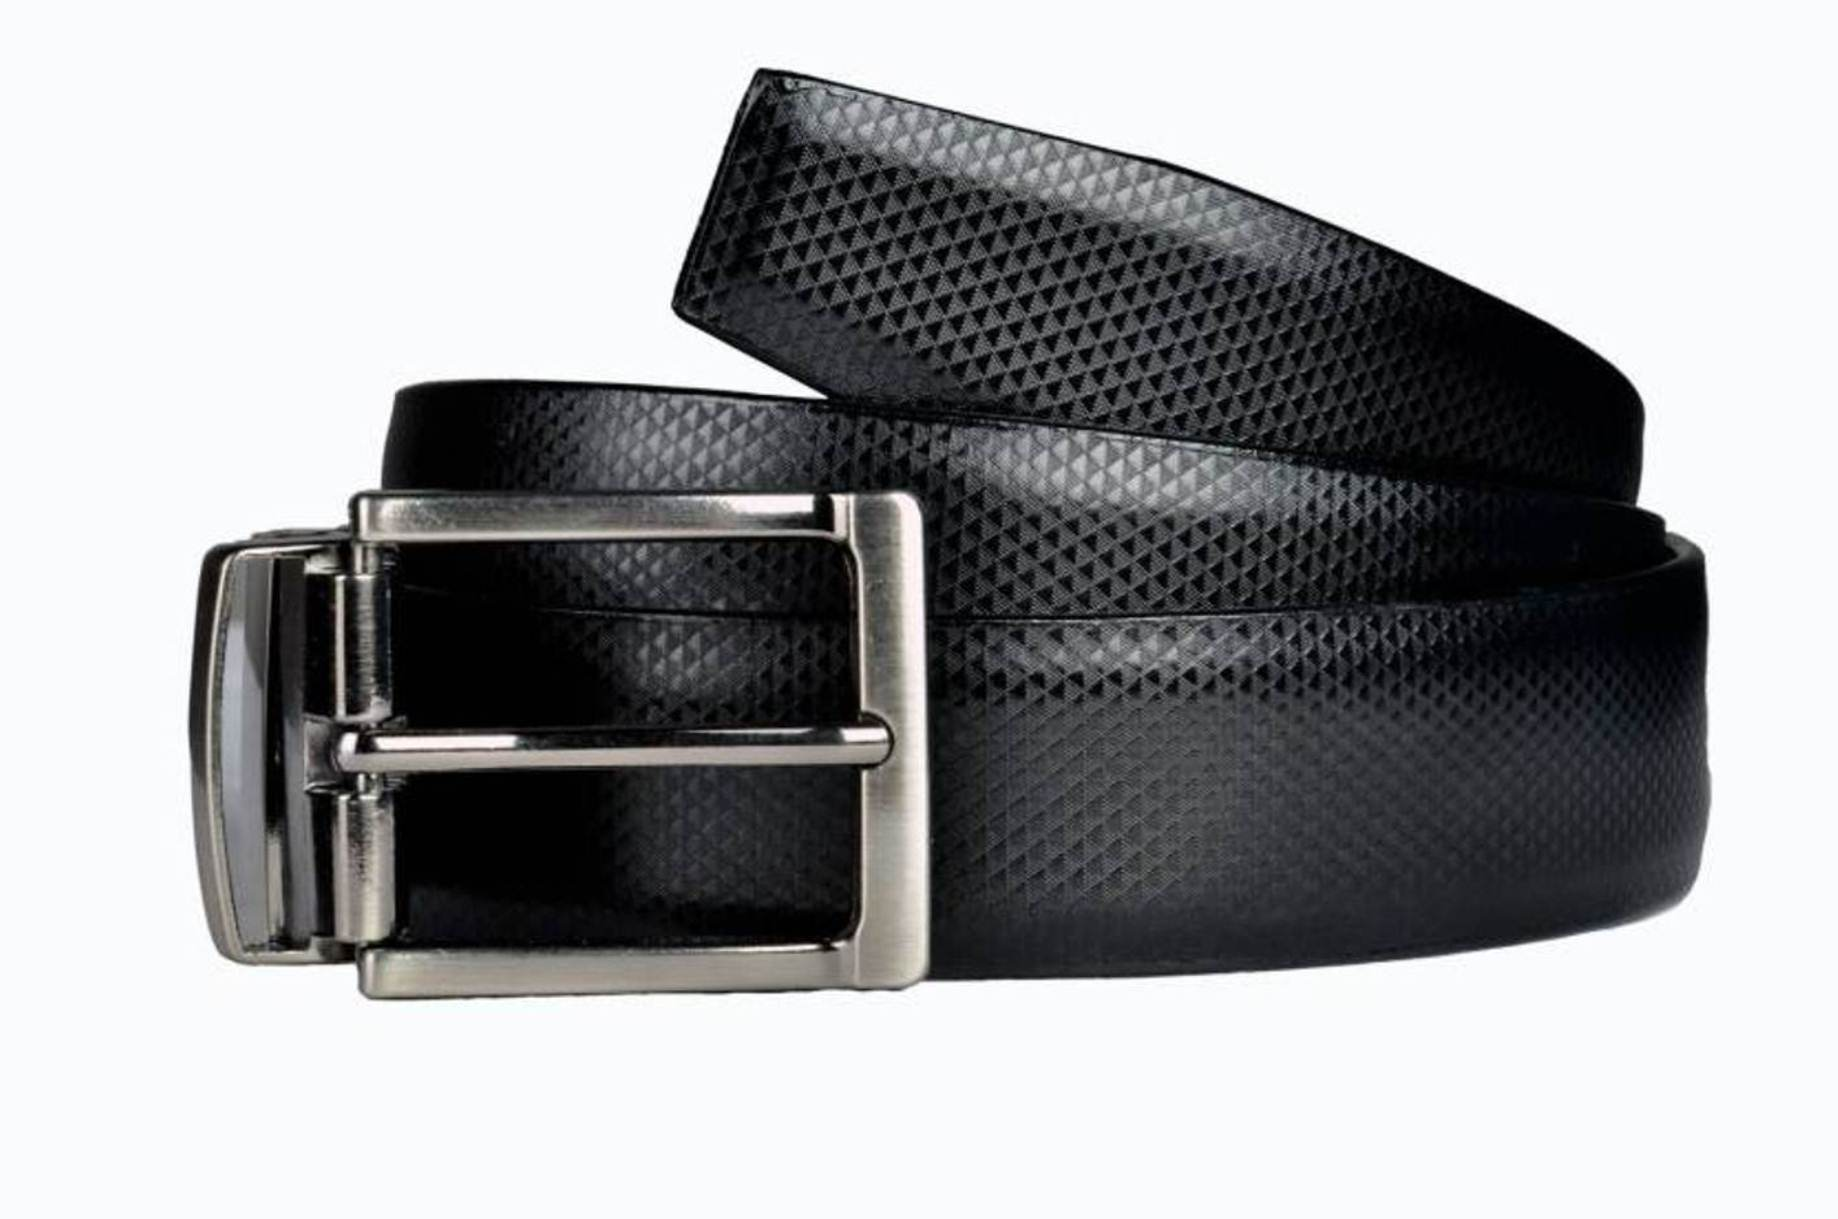 Reversible Leather Black/Brown Adjustable Automatic Buckle Belts Casual and Formal   Belt For Men and Boys, color Design For Daily Use  gifts for men  Synthetic leather/Rexine